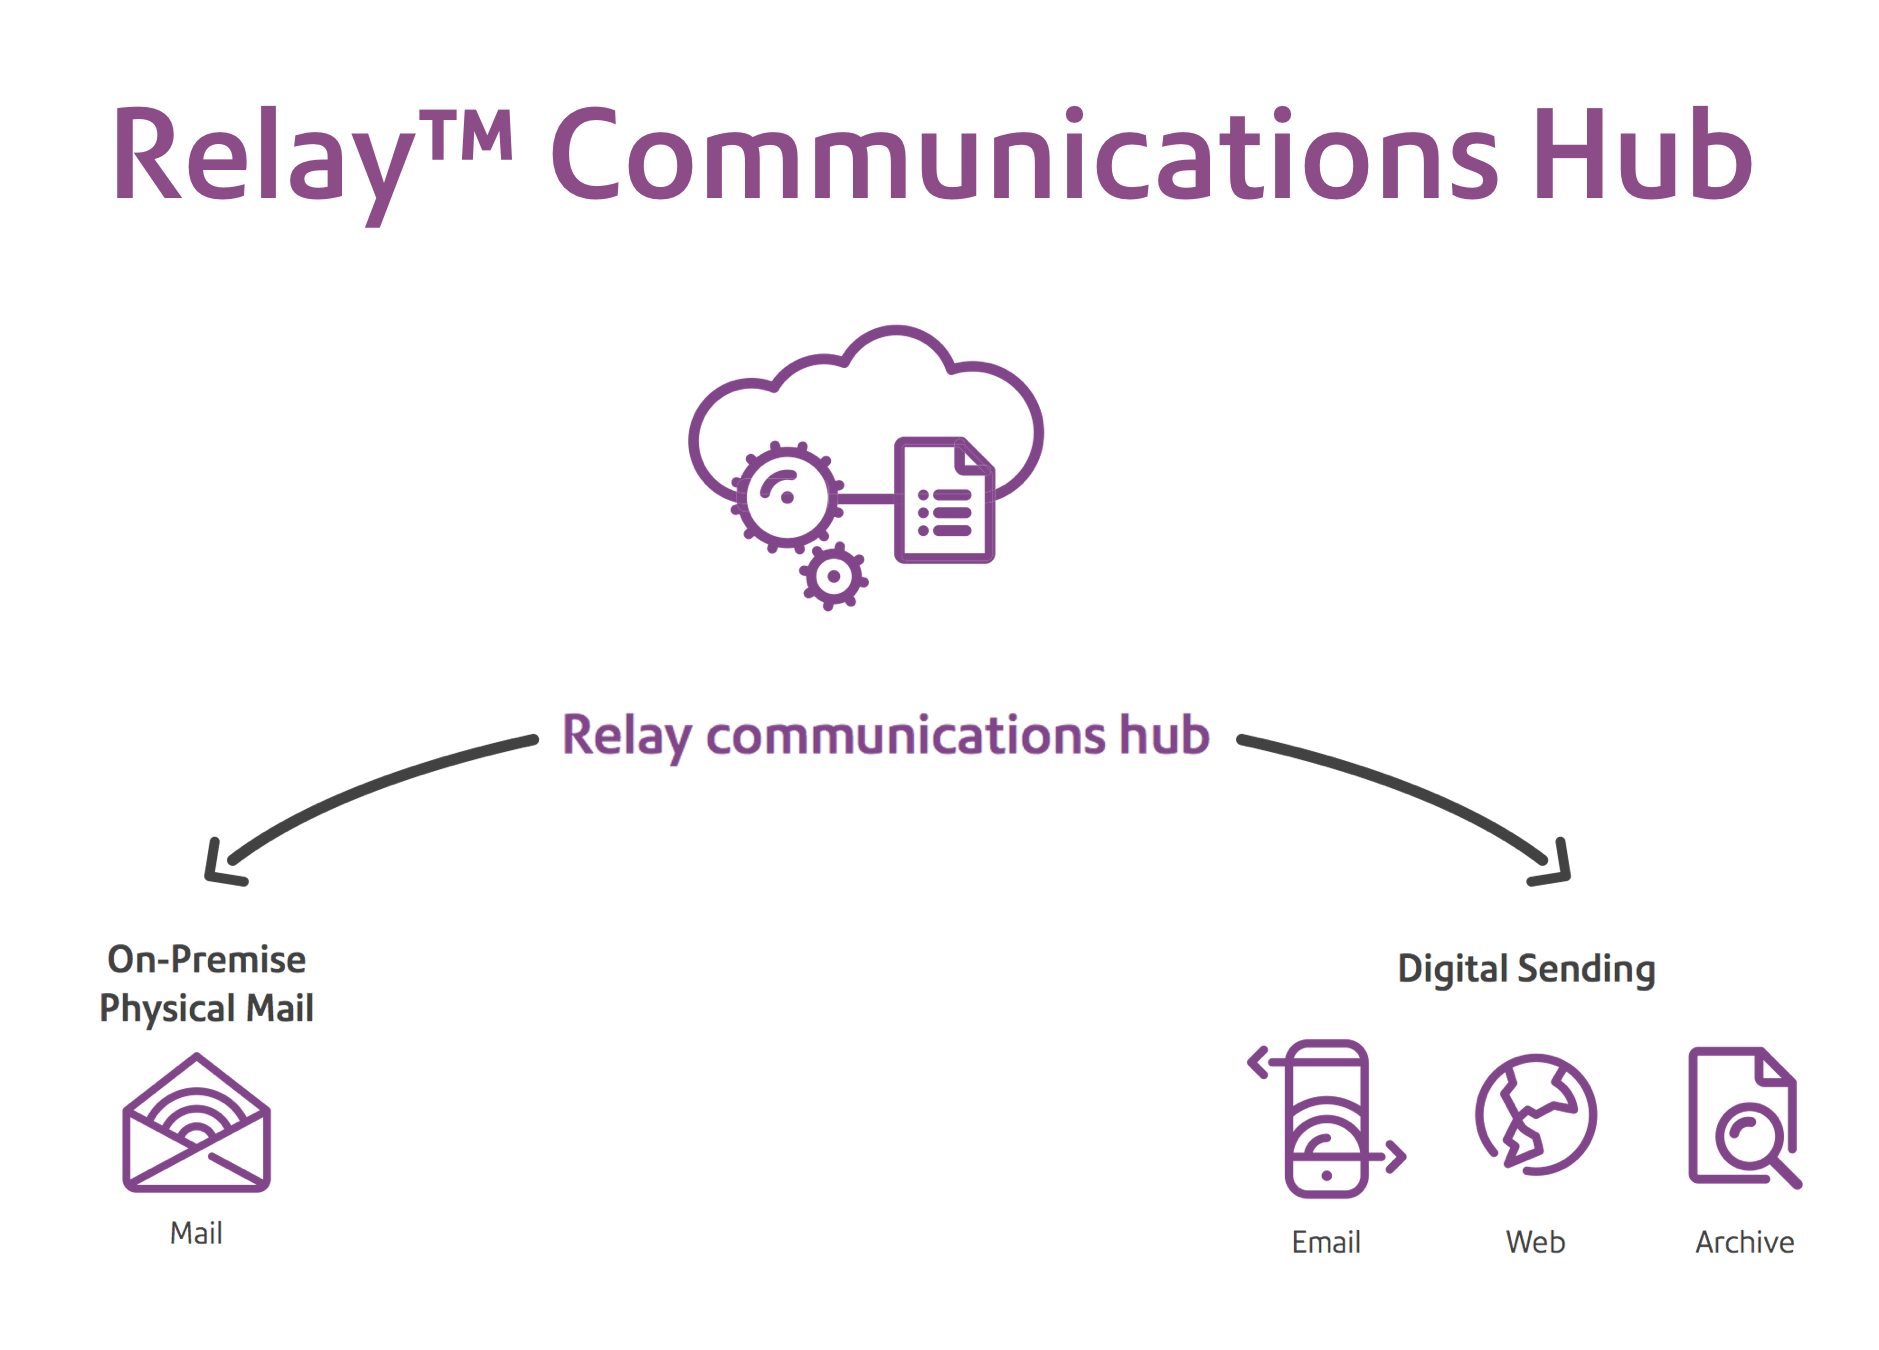 Relay™ communications hub infographic